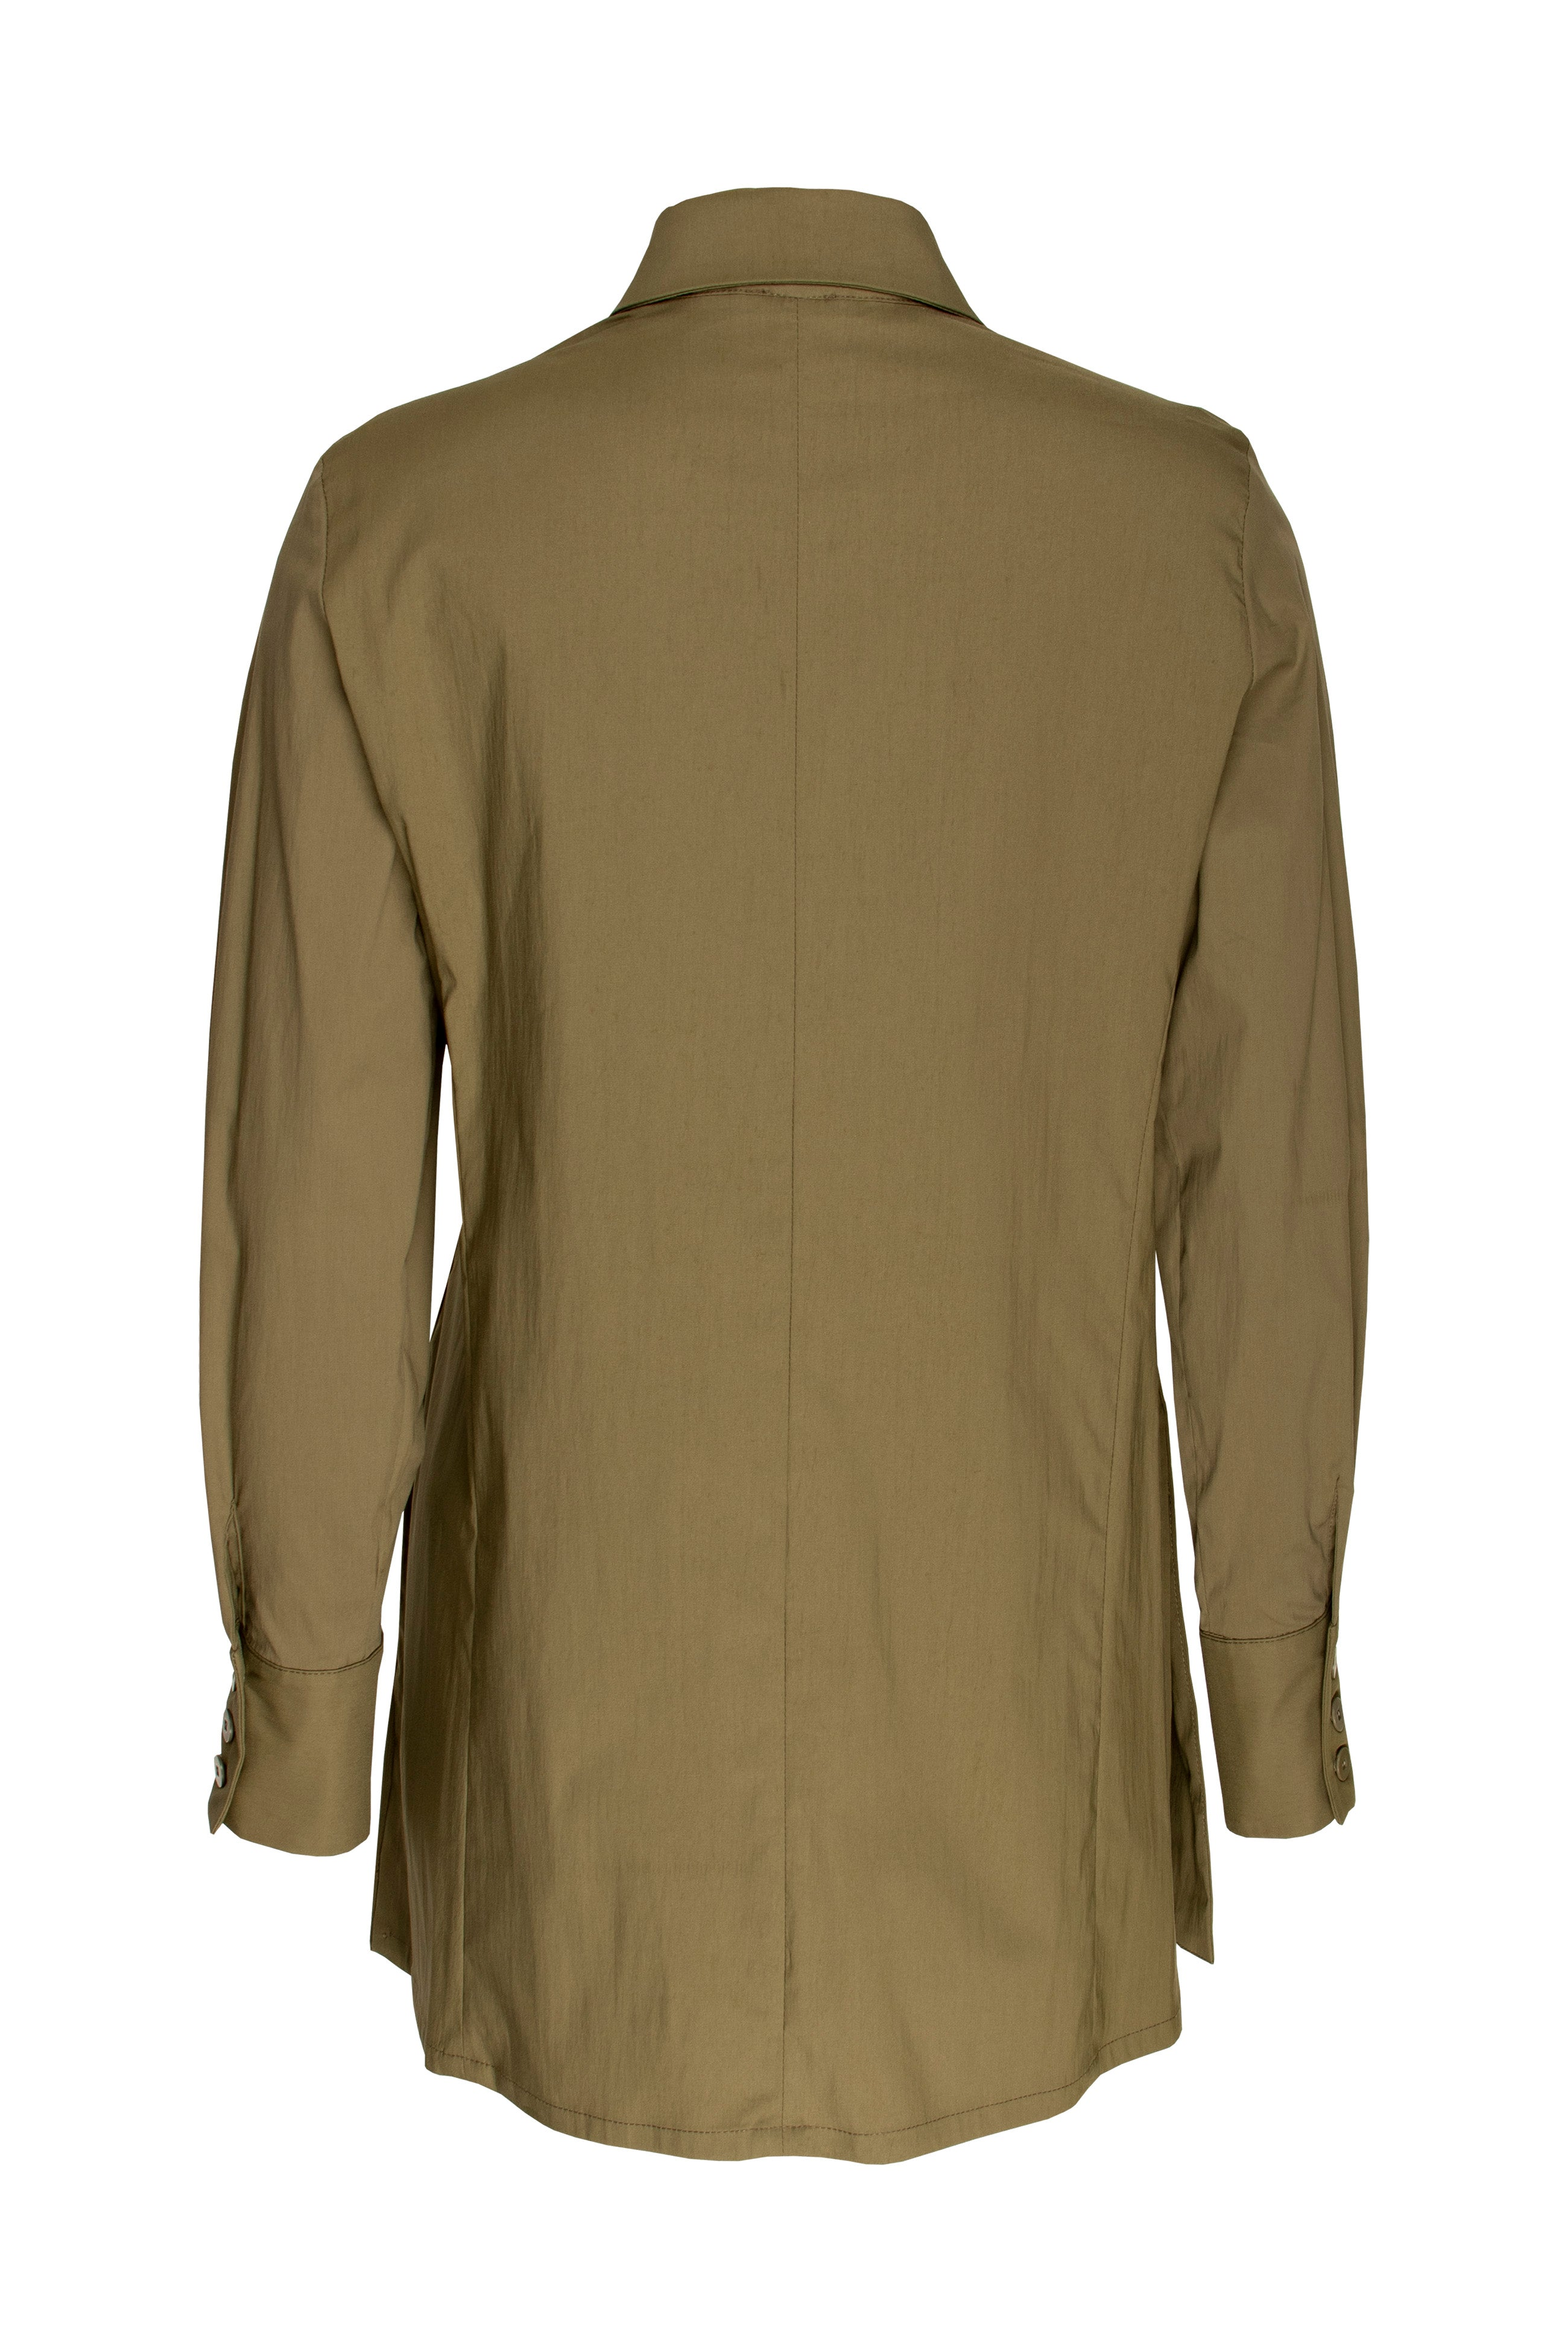 Olive 4 Button Shirt 9219